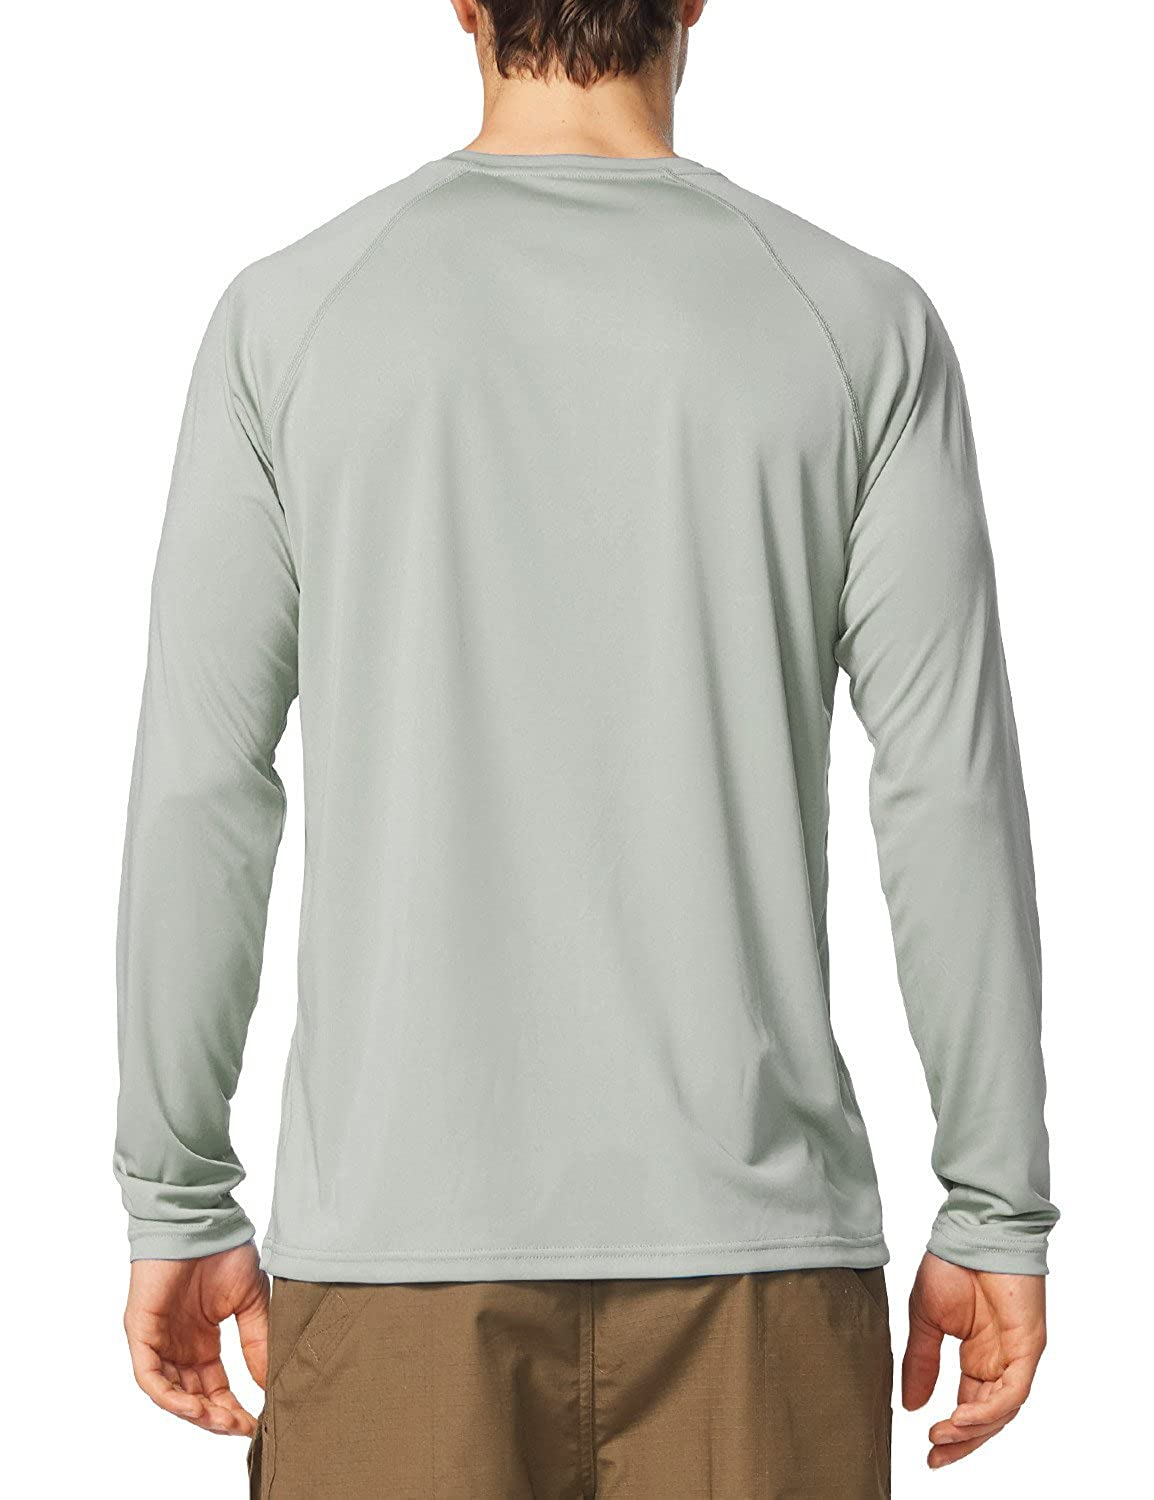 UV Sun Protection Outdoor Long Sleeve Performance T-Shirt Baleaf Mens UPF 50